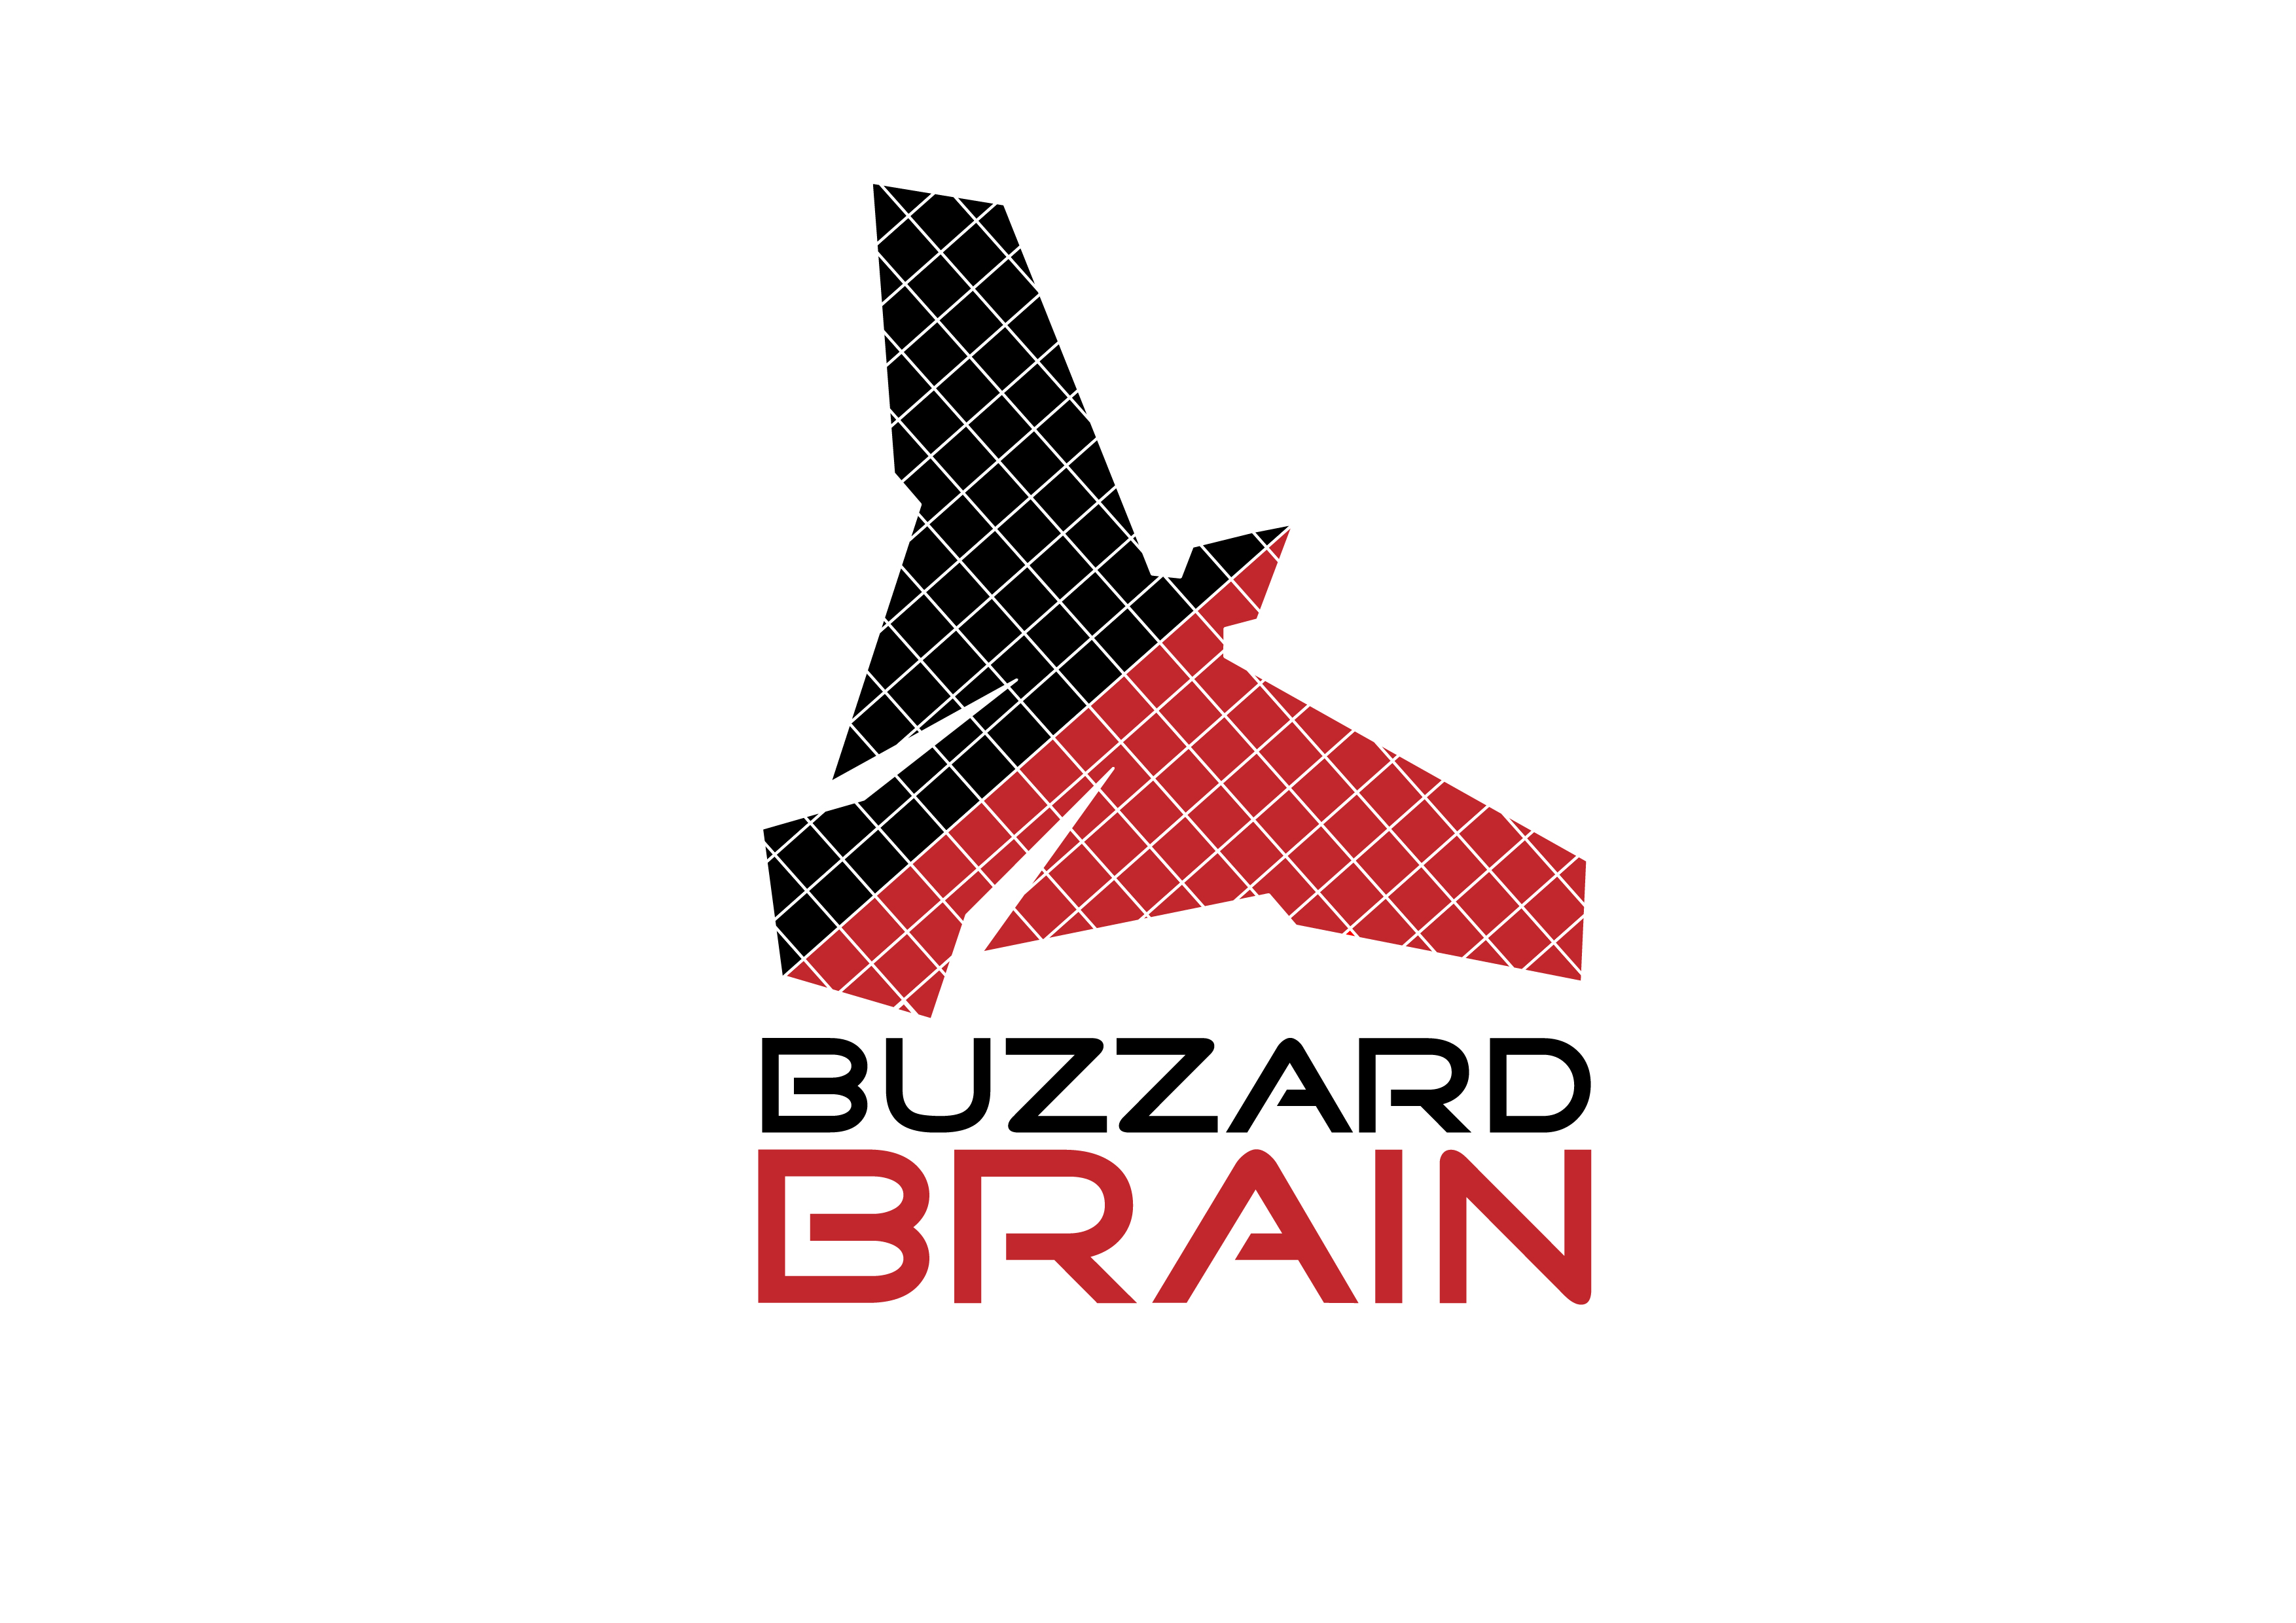 Logo Design by 3draw - Entry No. 13 in the Logo Design Contest Buzzard Brain Logo Design.